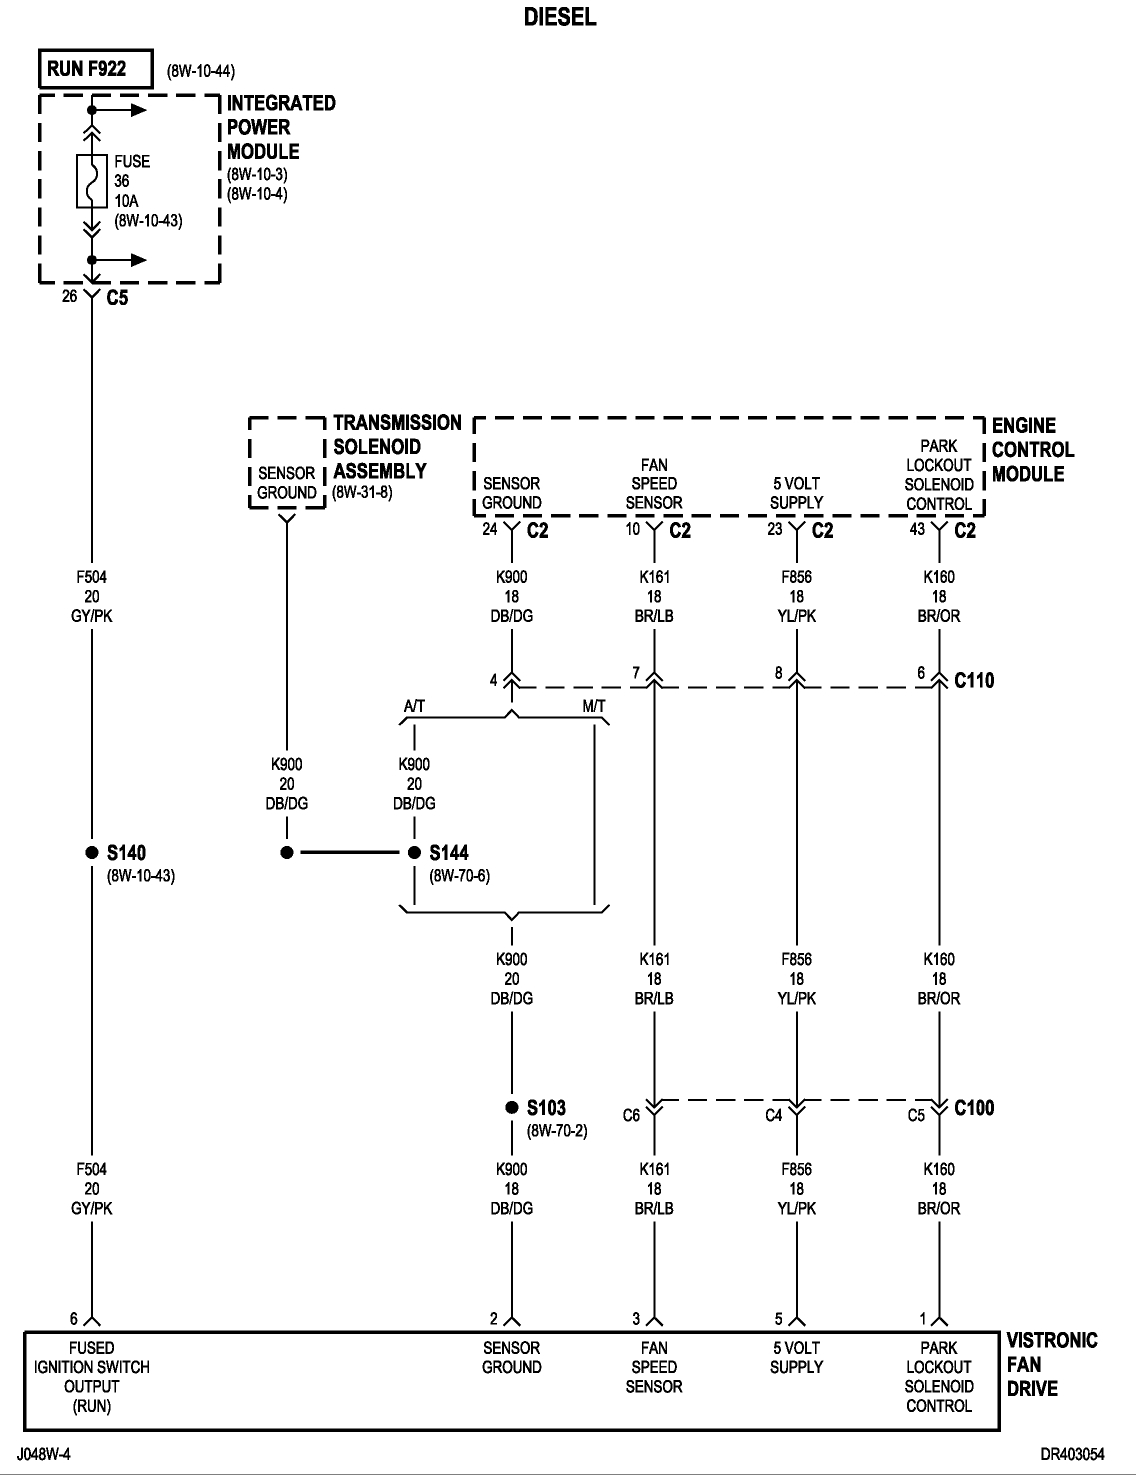 hight resolution of 2005 dodge ram 2500 diesel wiring diagram cummins fan clutch wiring diagram i need wiring